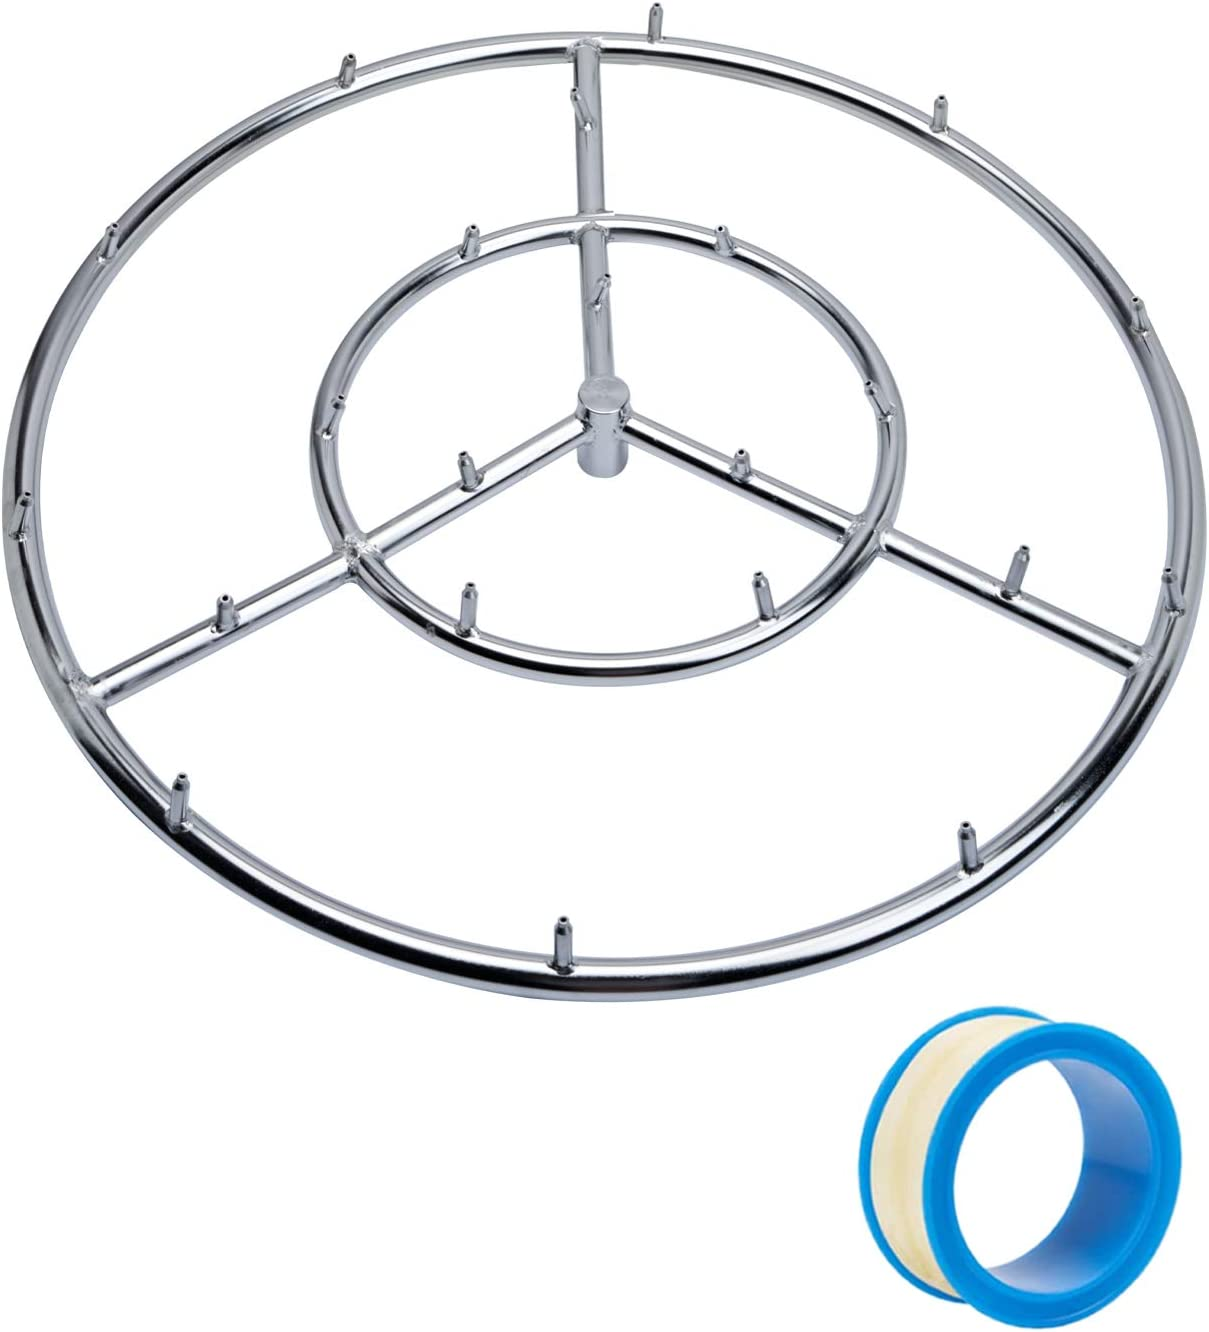 """GASPRO 24"""" Round Jet Burner Ring for Natural Gas or Propane Fire Pit, 304 Series Stainless Steel with Thread Seal Tape, High Flame"""